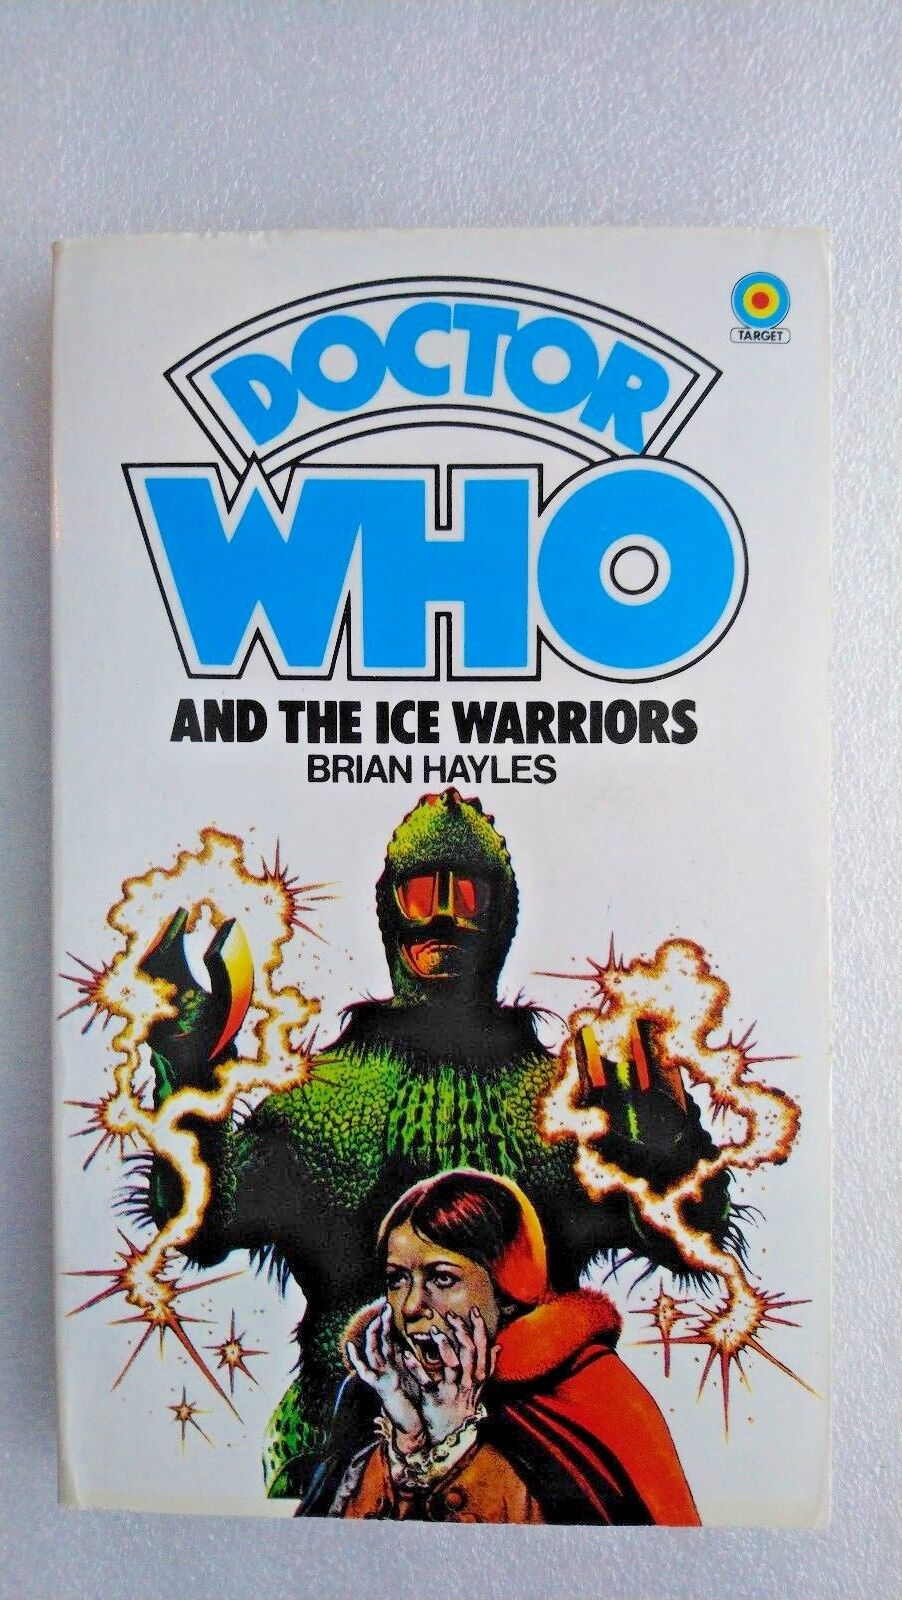 Doctor Who and the Ice Warriors by Brian Hayles (Paperback, 1984)